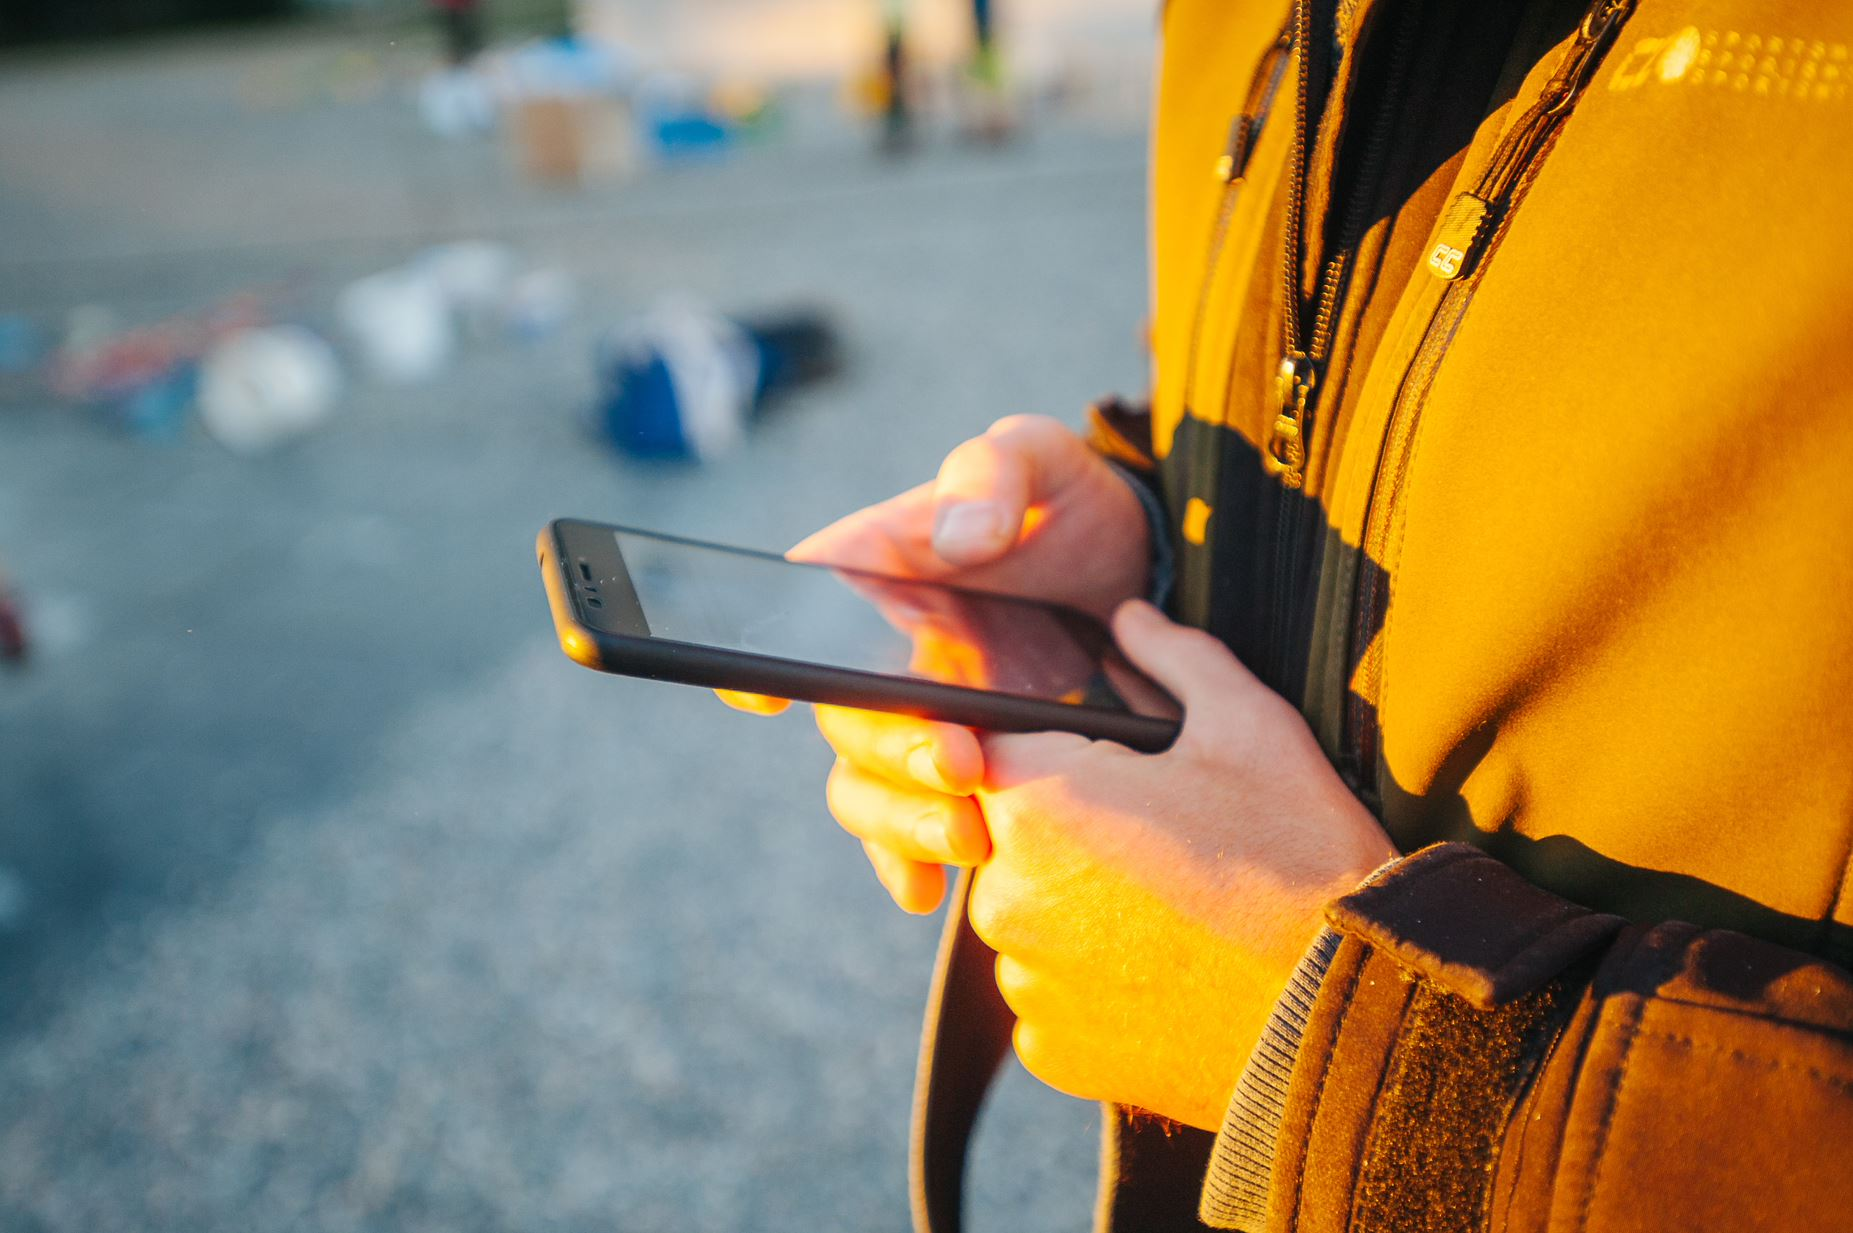 Maintenance technicians can easily capture asset data from asset labels and tags by using our smart mobile app.